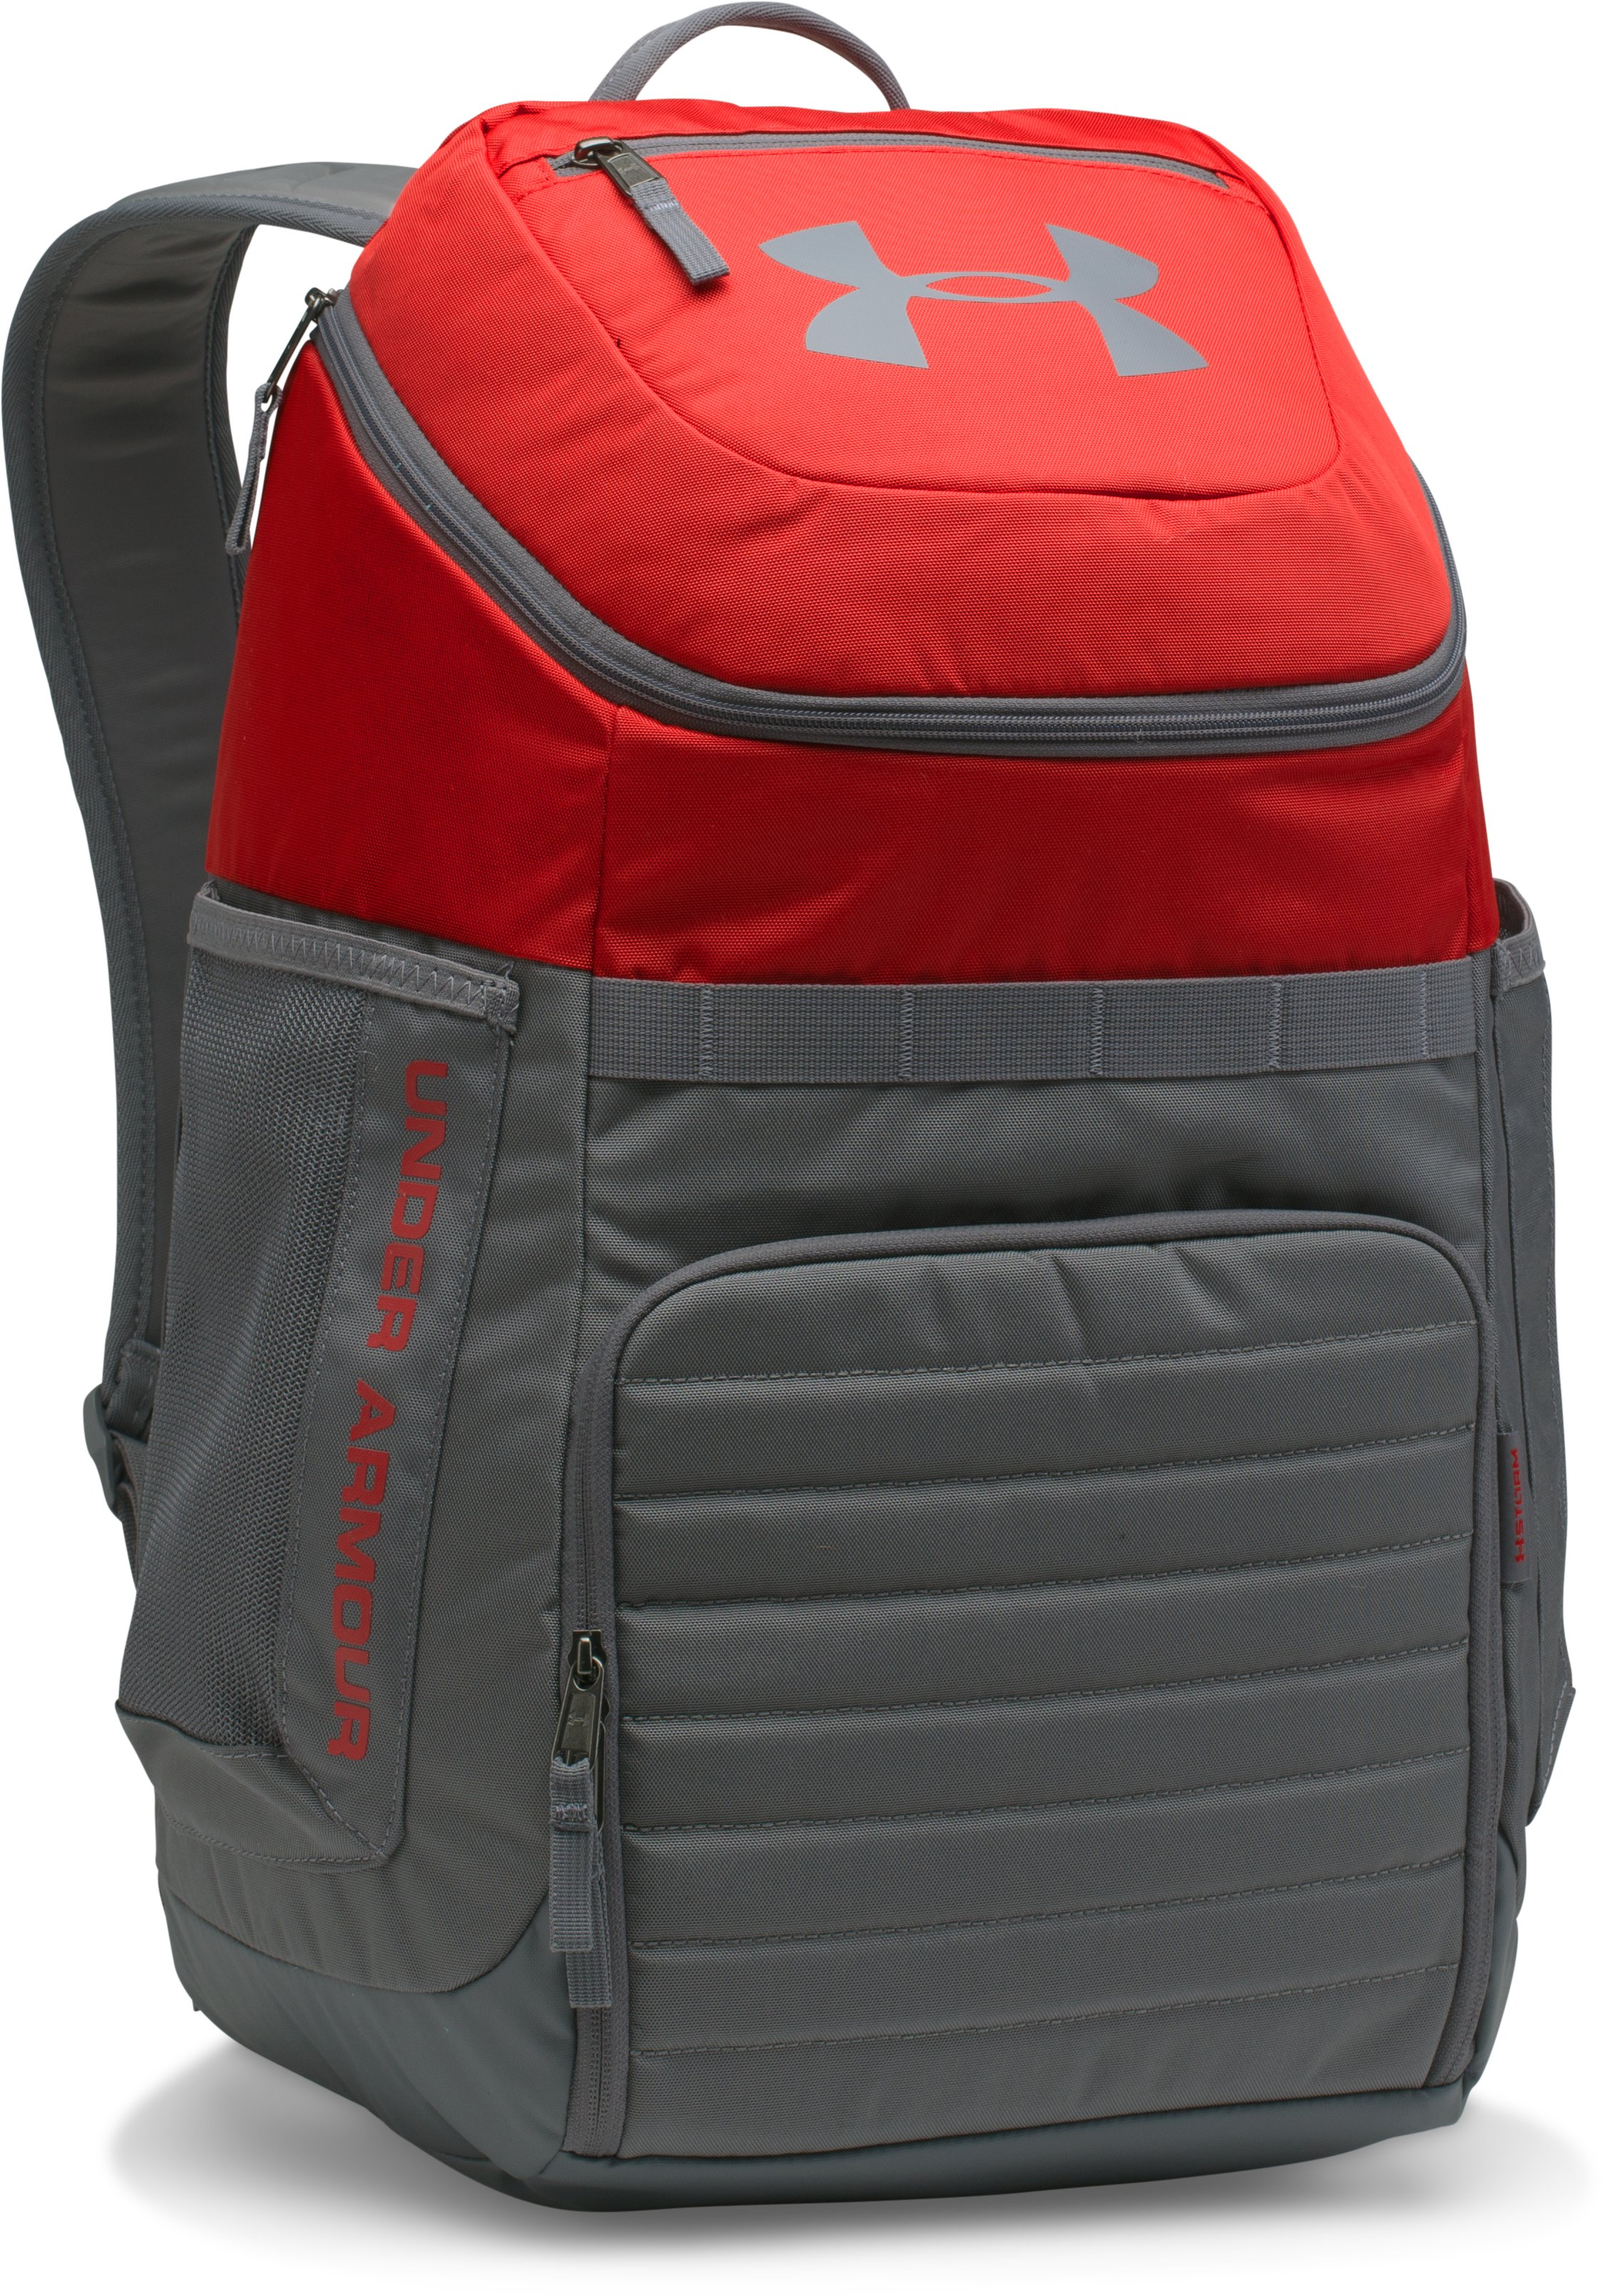 UA Undeniable 3.0 Backpack, Red, undefined